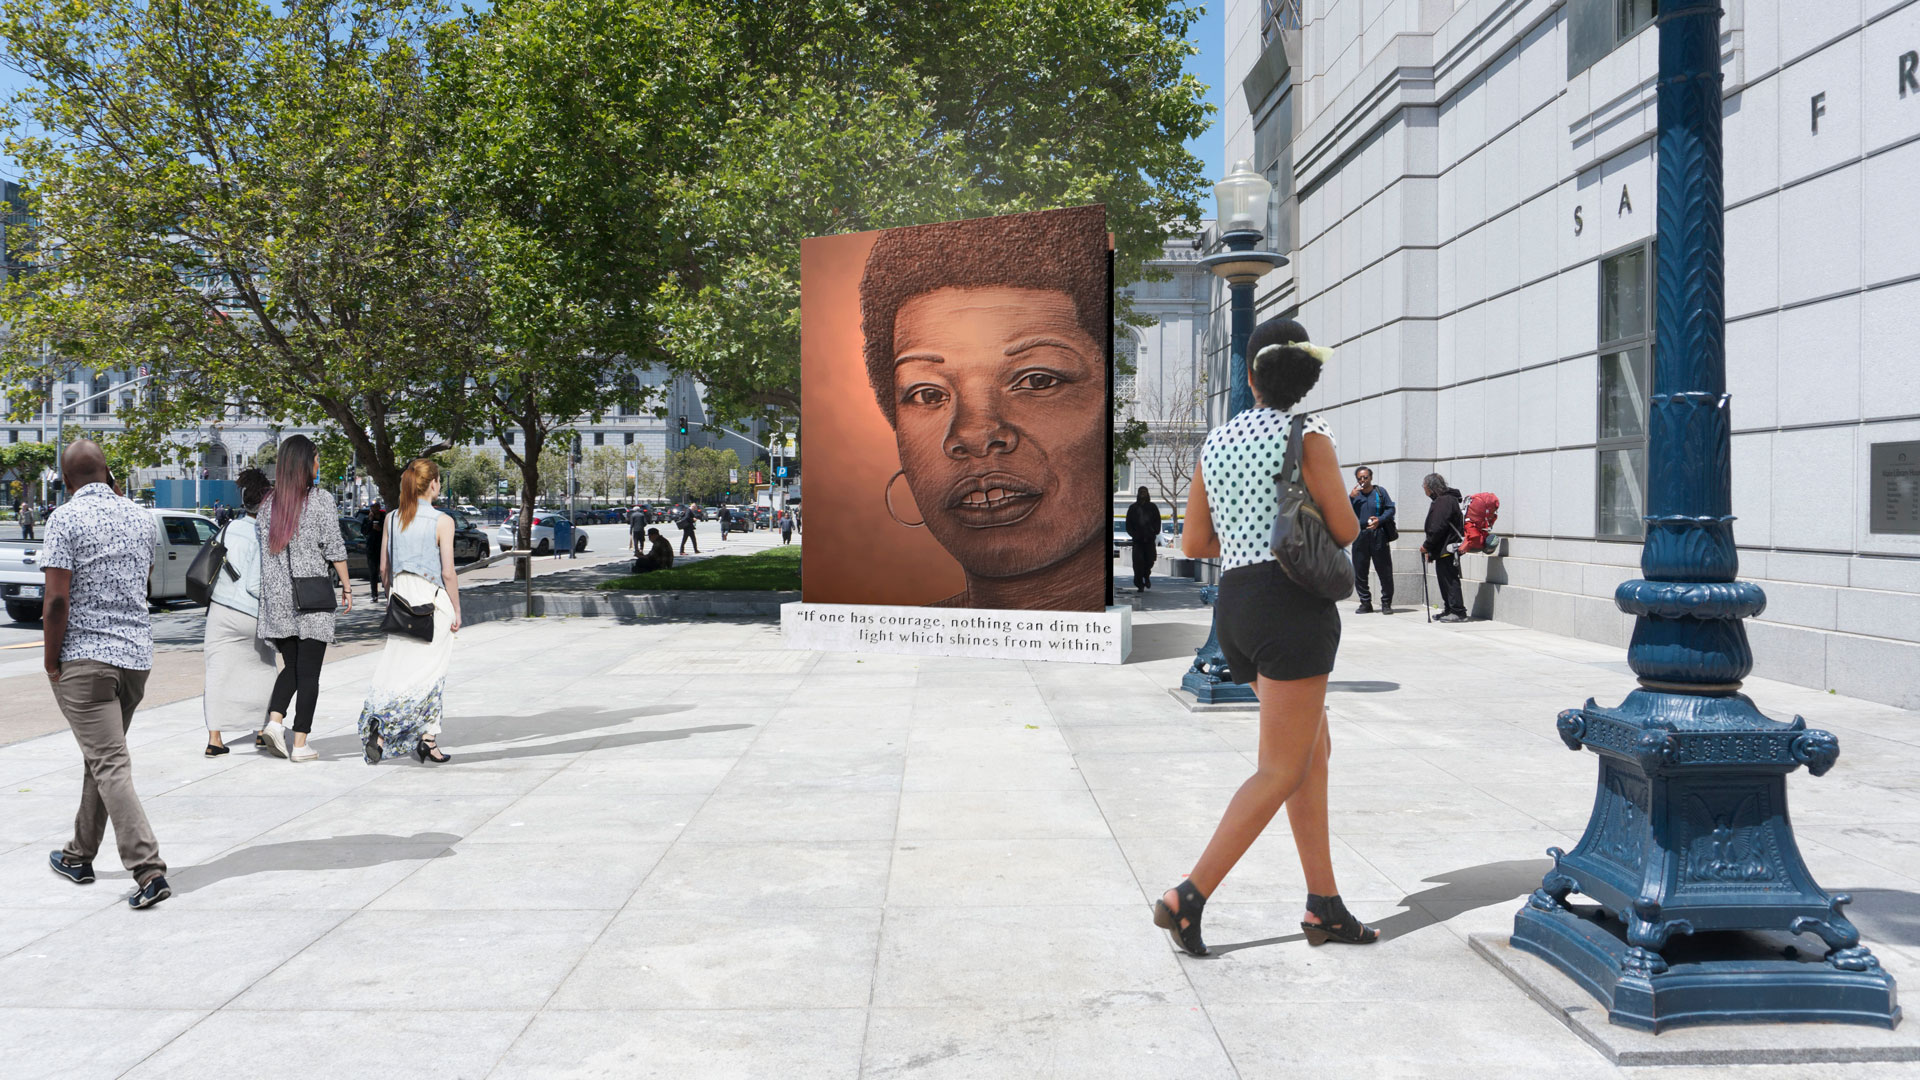 Plans for Maya Angelou Monument in San Francisco Face Long Delay